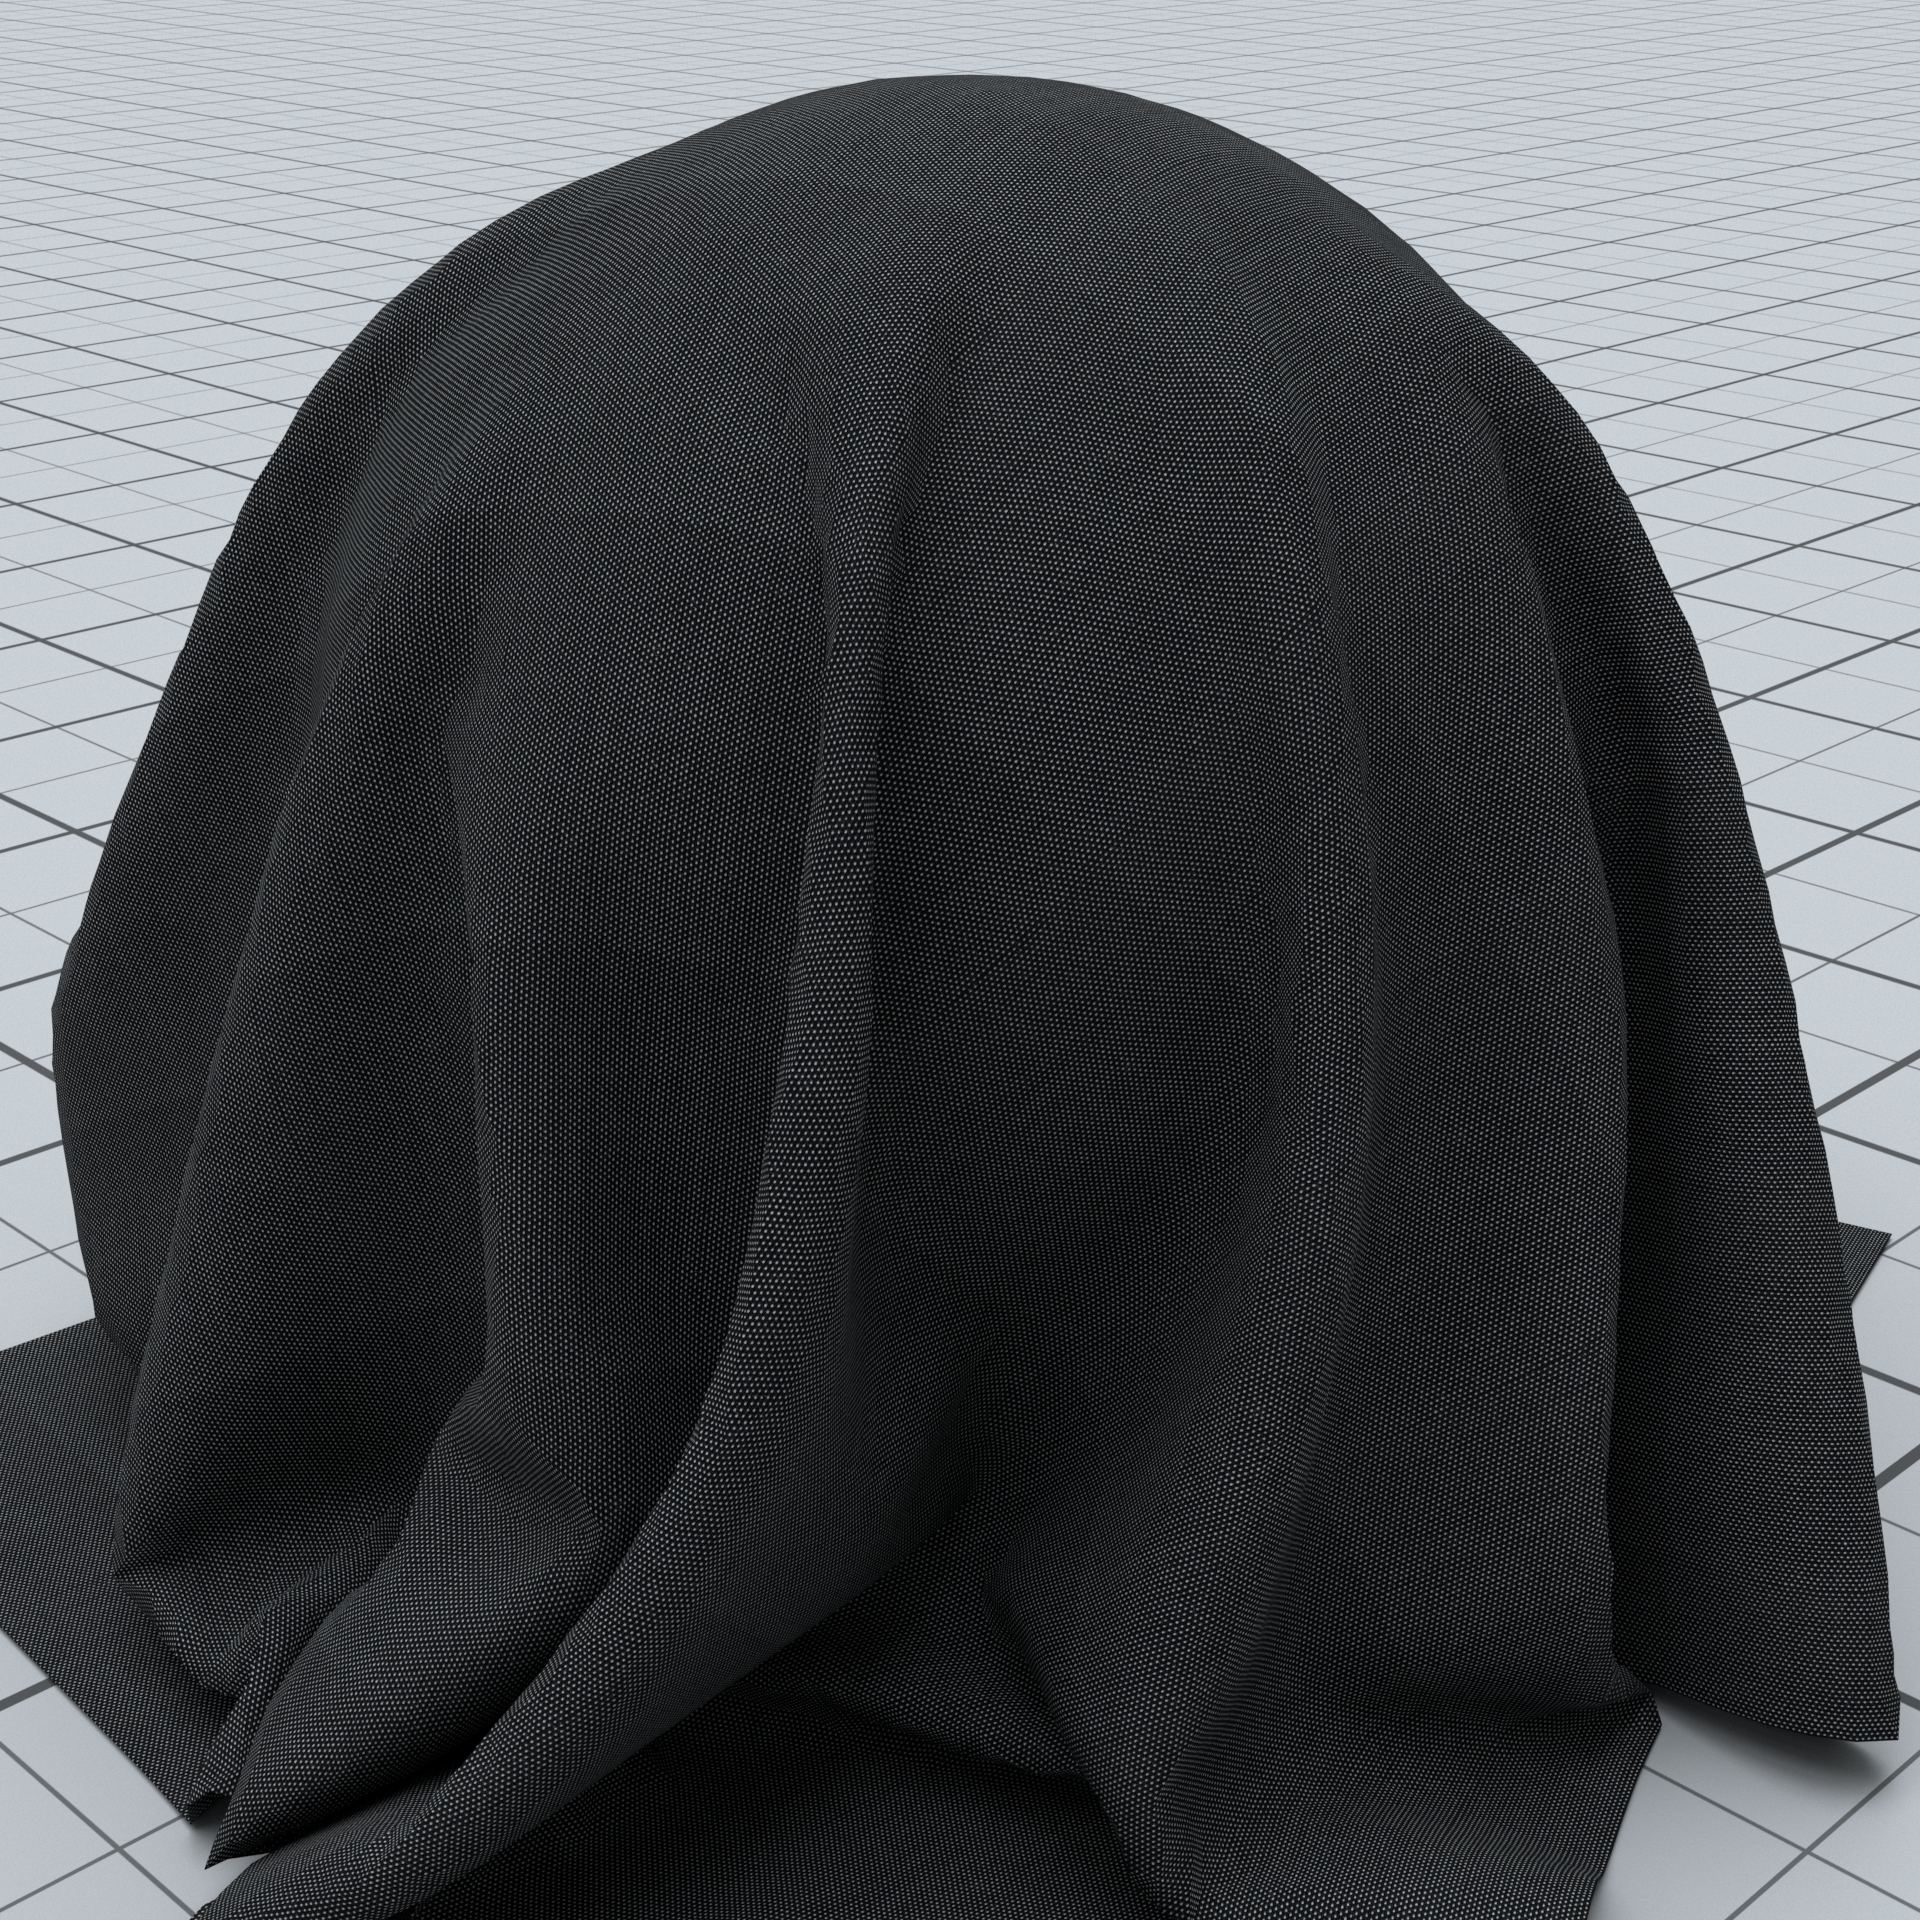 Fabric AI 04 Preview.jpg